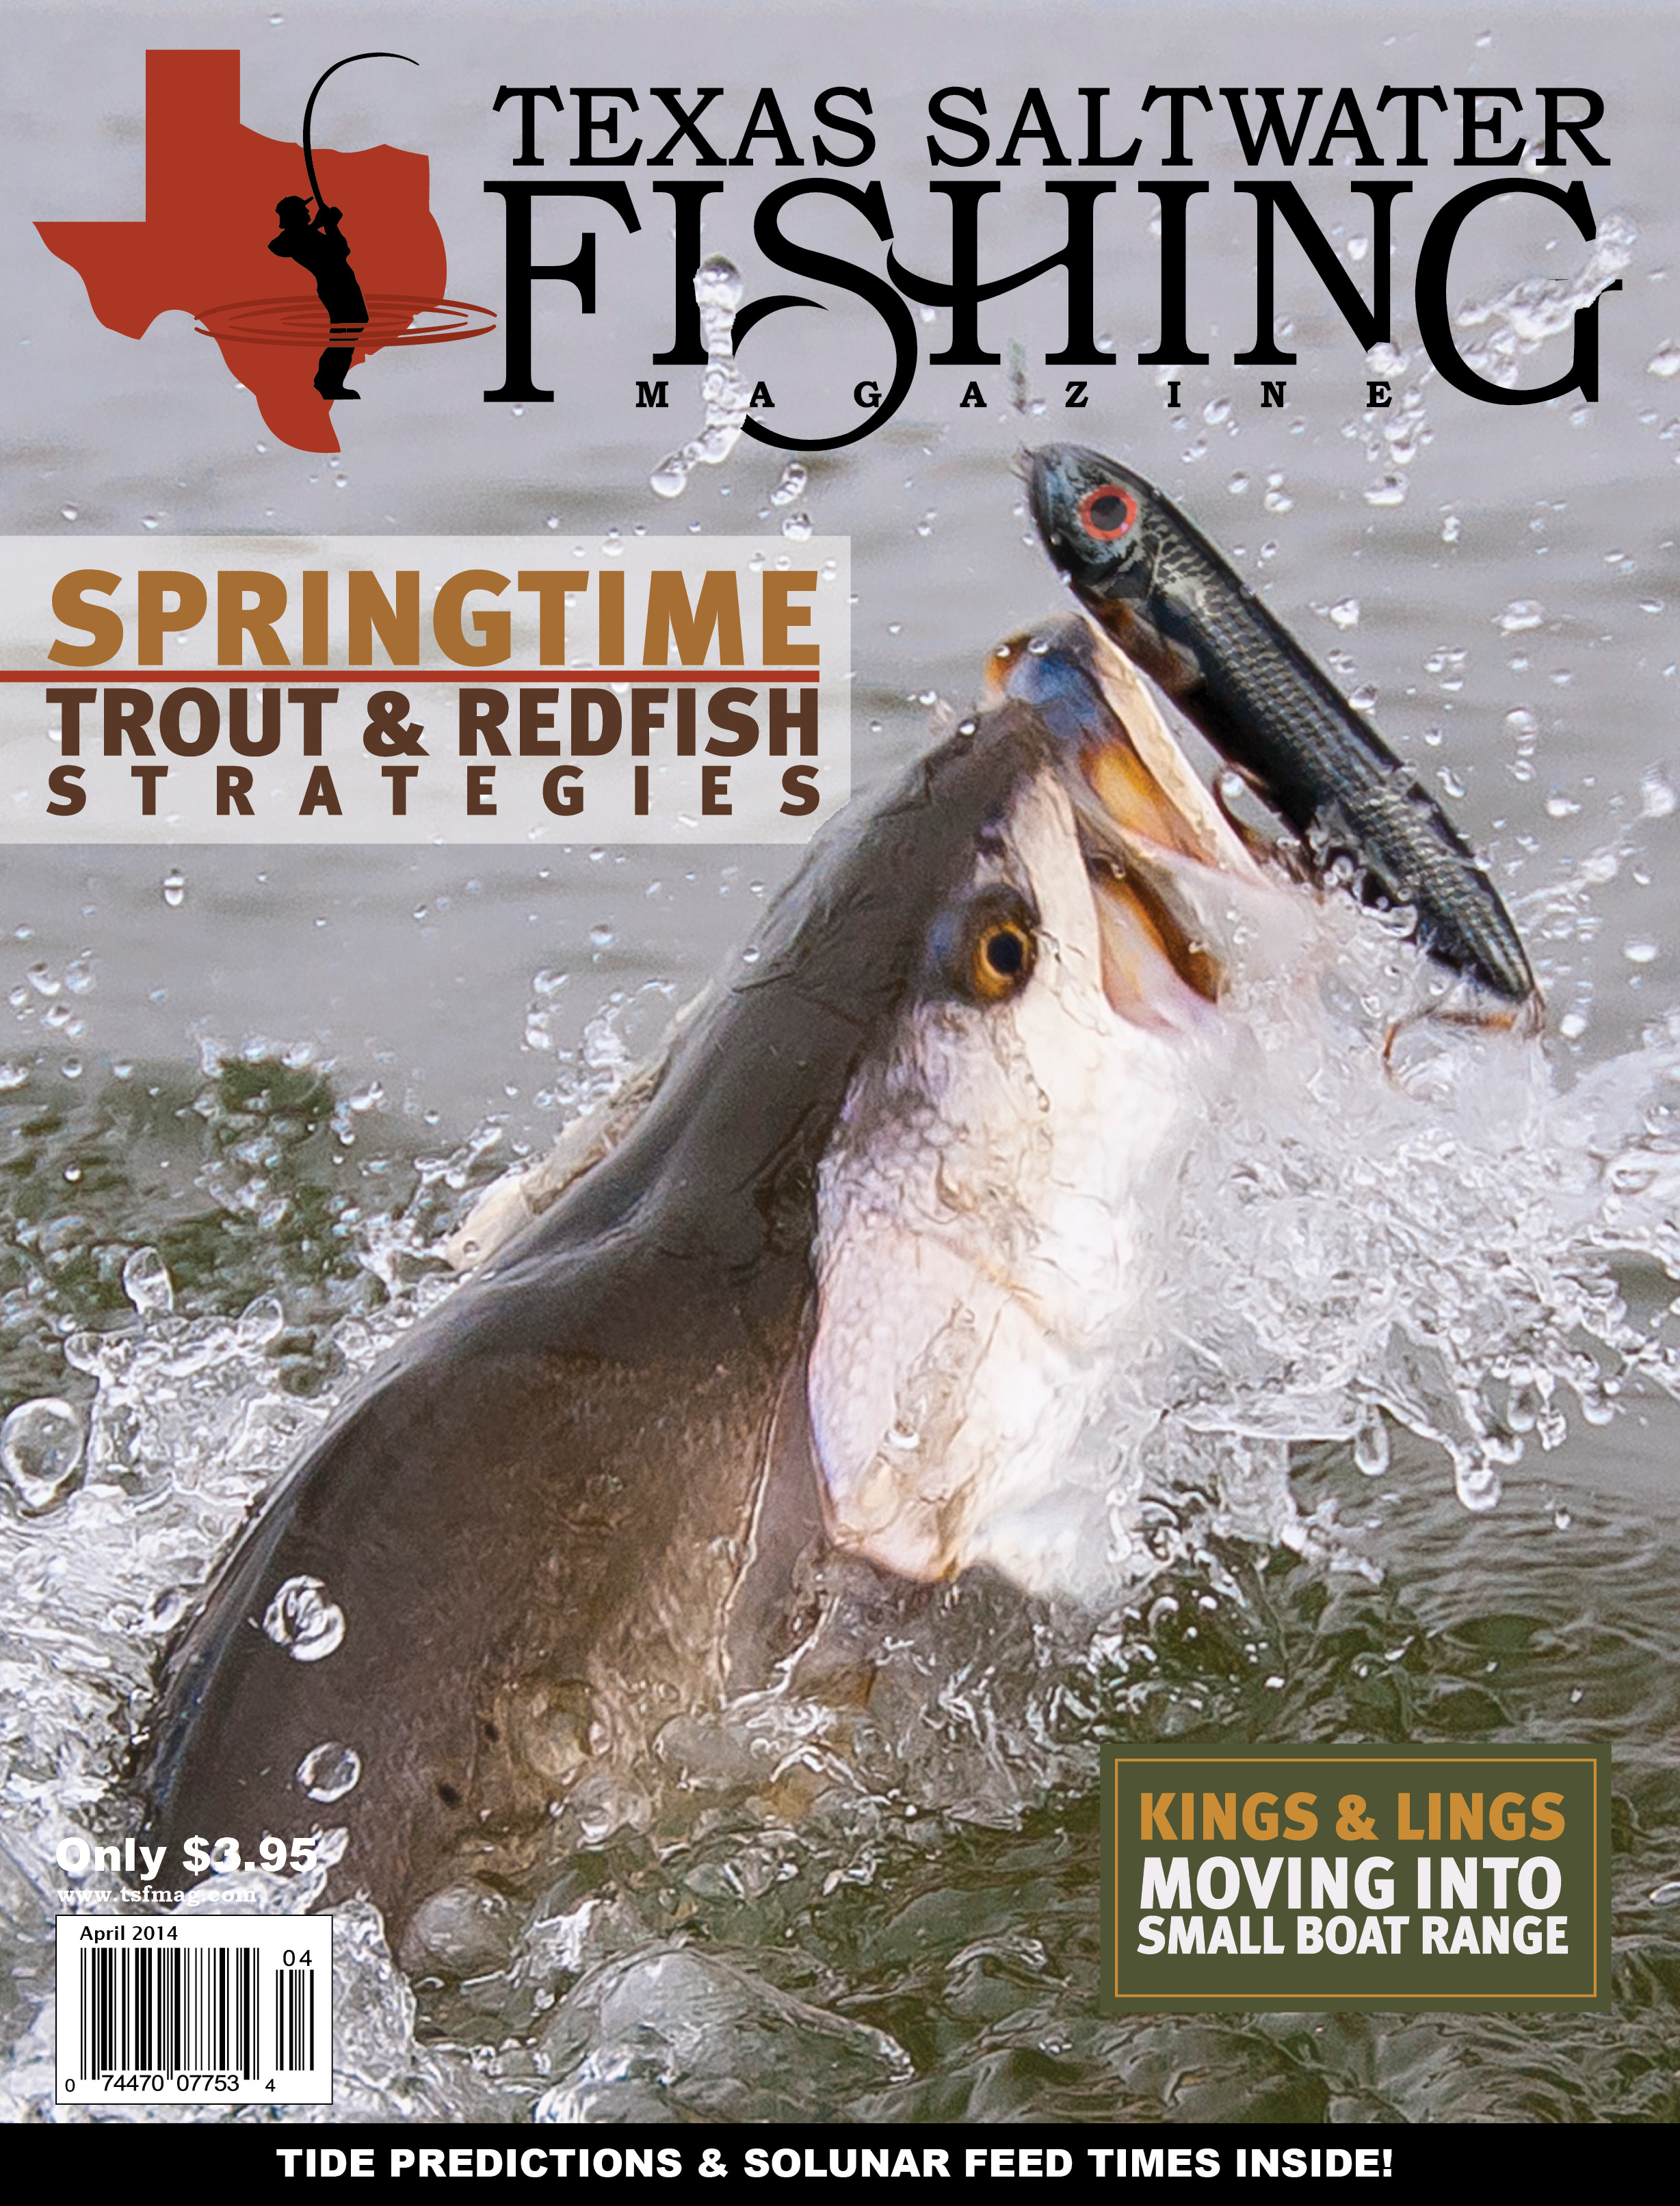 Texas saltwater fishing magazine april 2014 for Texas saltwater fishing magazine